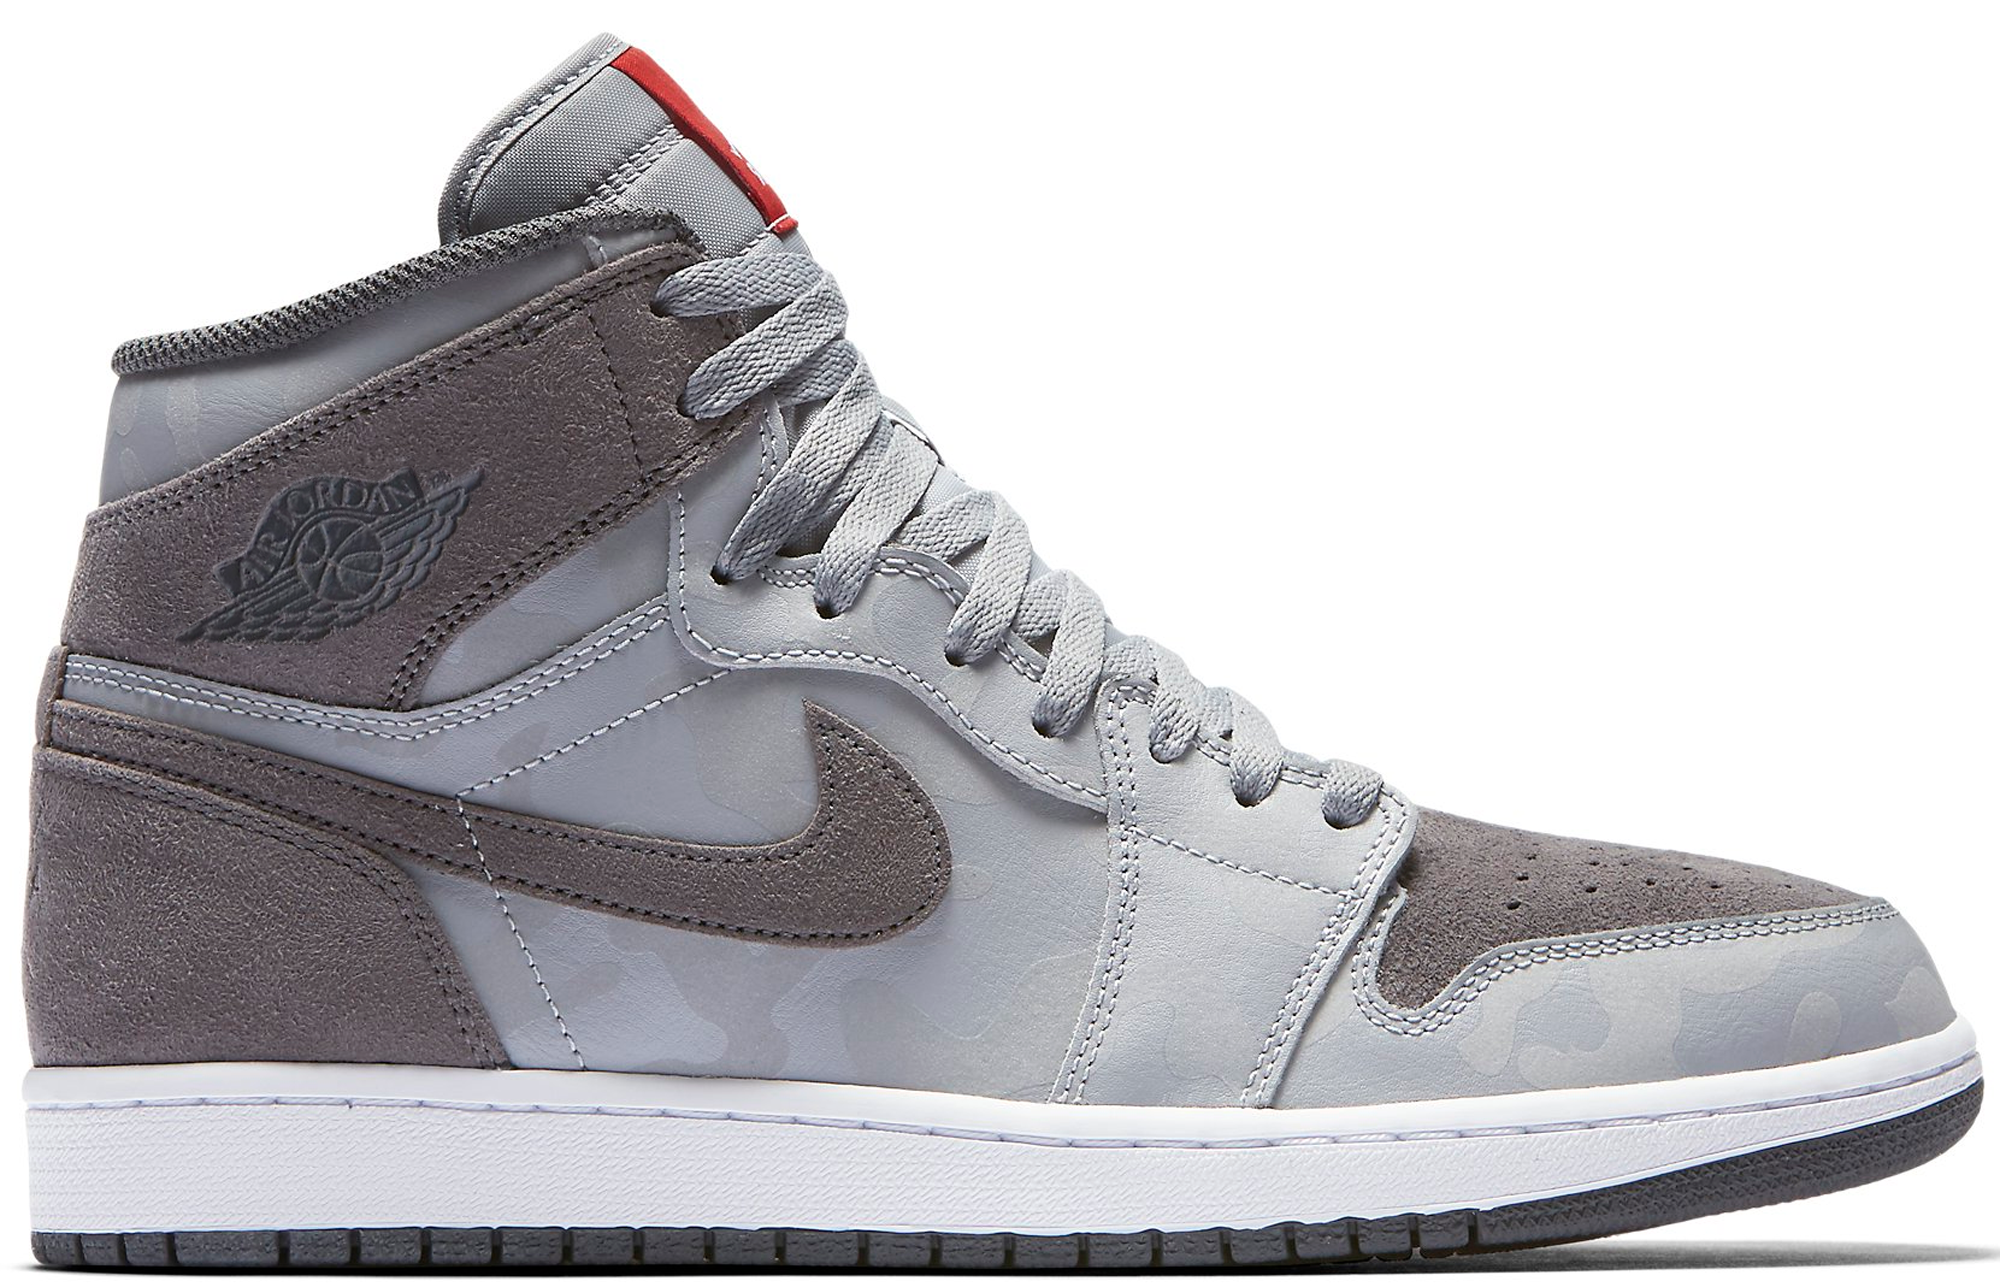 64ea73d7d8eb Air Jordan 1 Retro High Premium Camo 3M Wolf Grey - StockX News